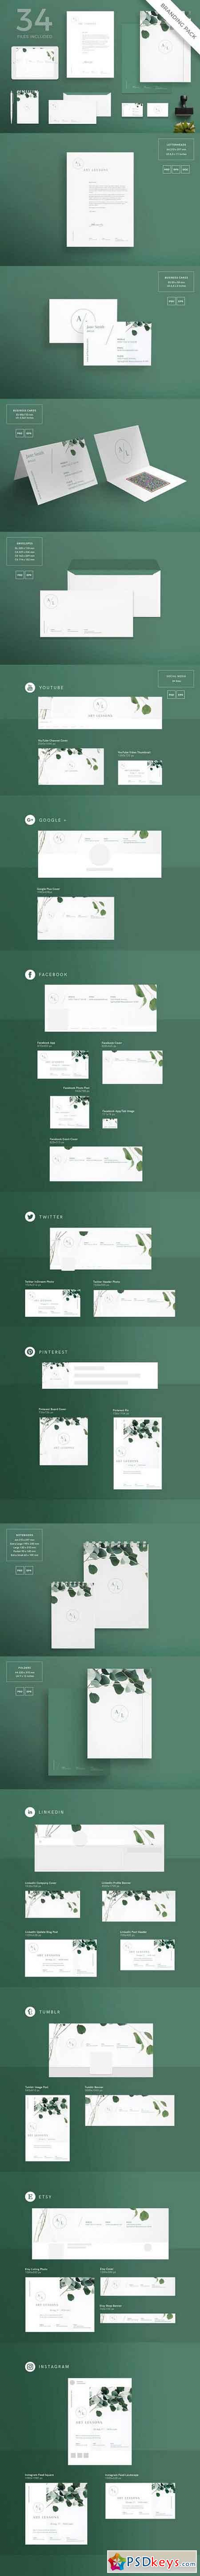 Branding Pack Art Lessons 1485035